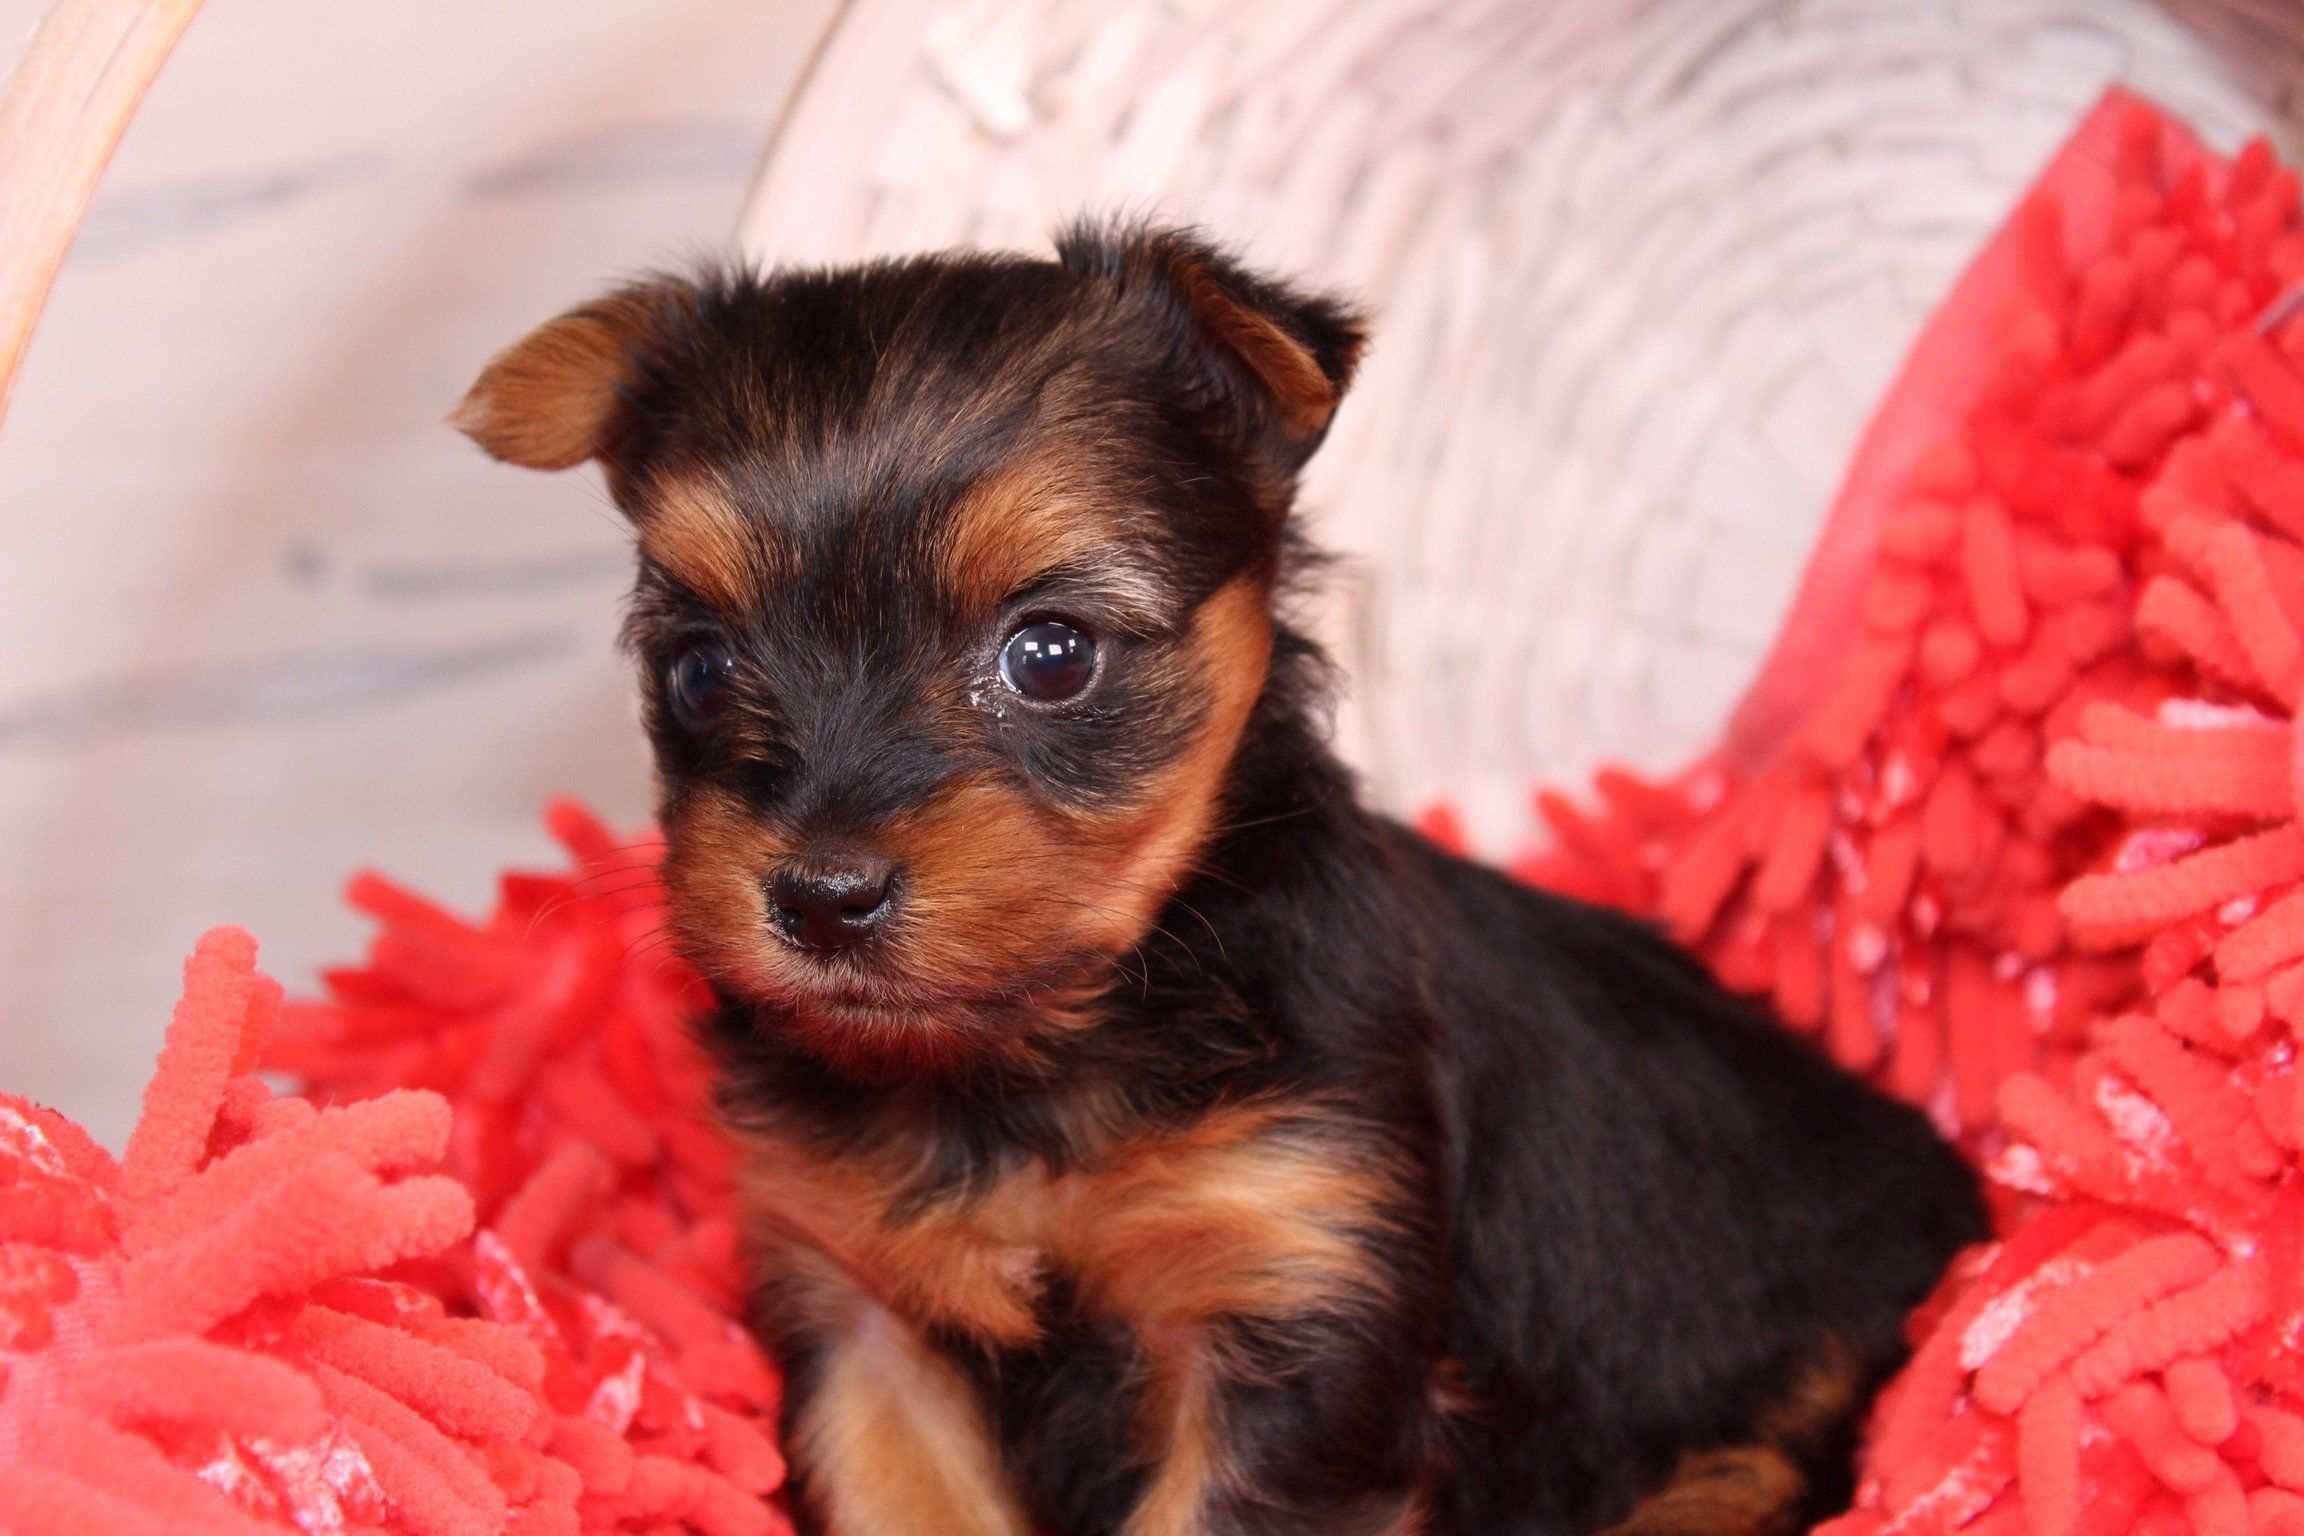 Pin by VIP Puppies Animals, Dogs, & on Puppies for Sale